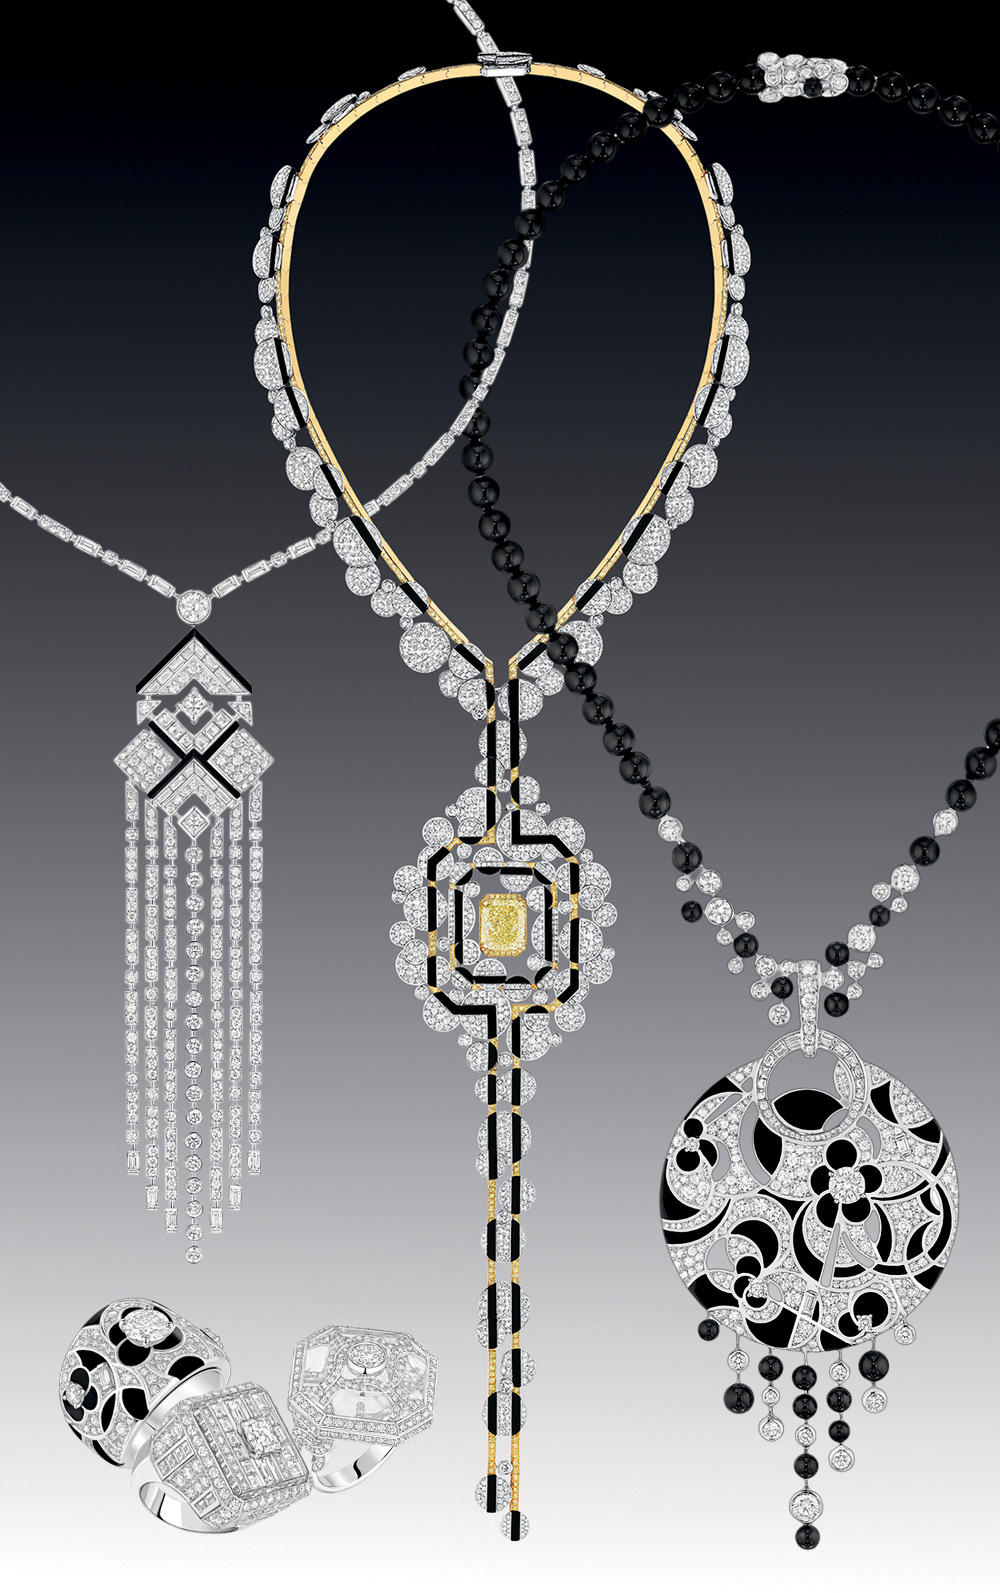 Chanel Necklaces Charlestone, Morning in Vendome, Midnight